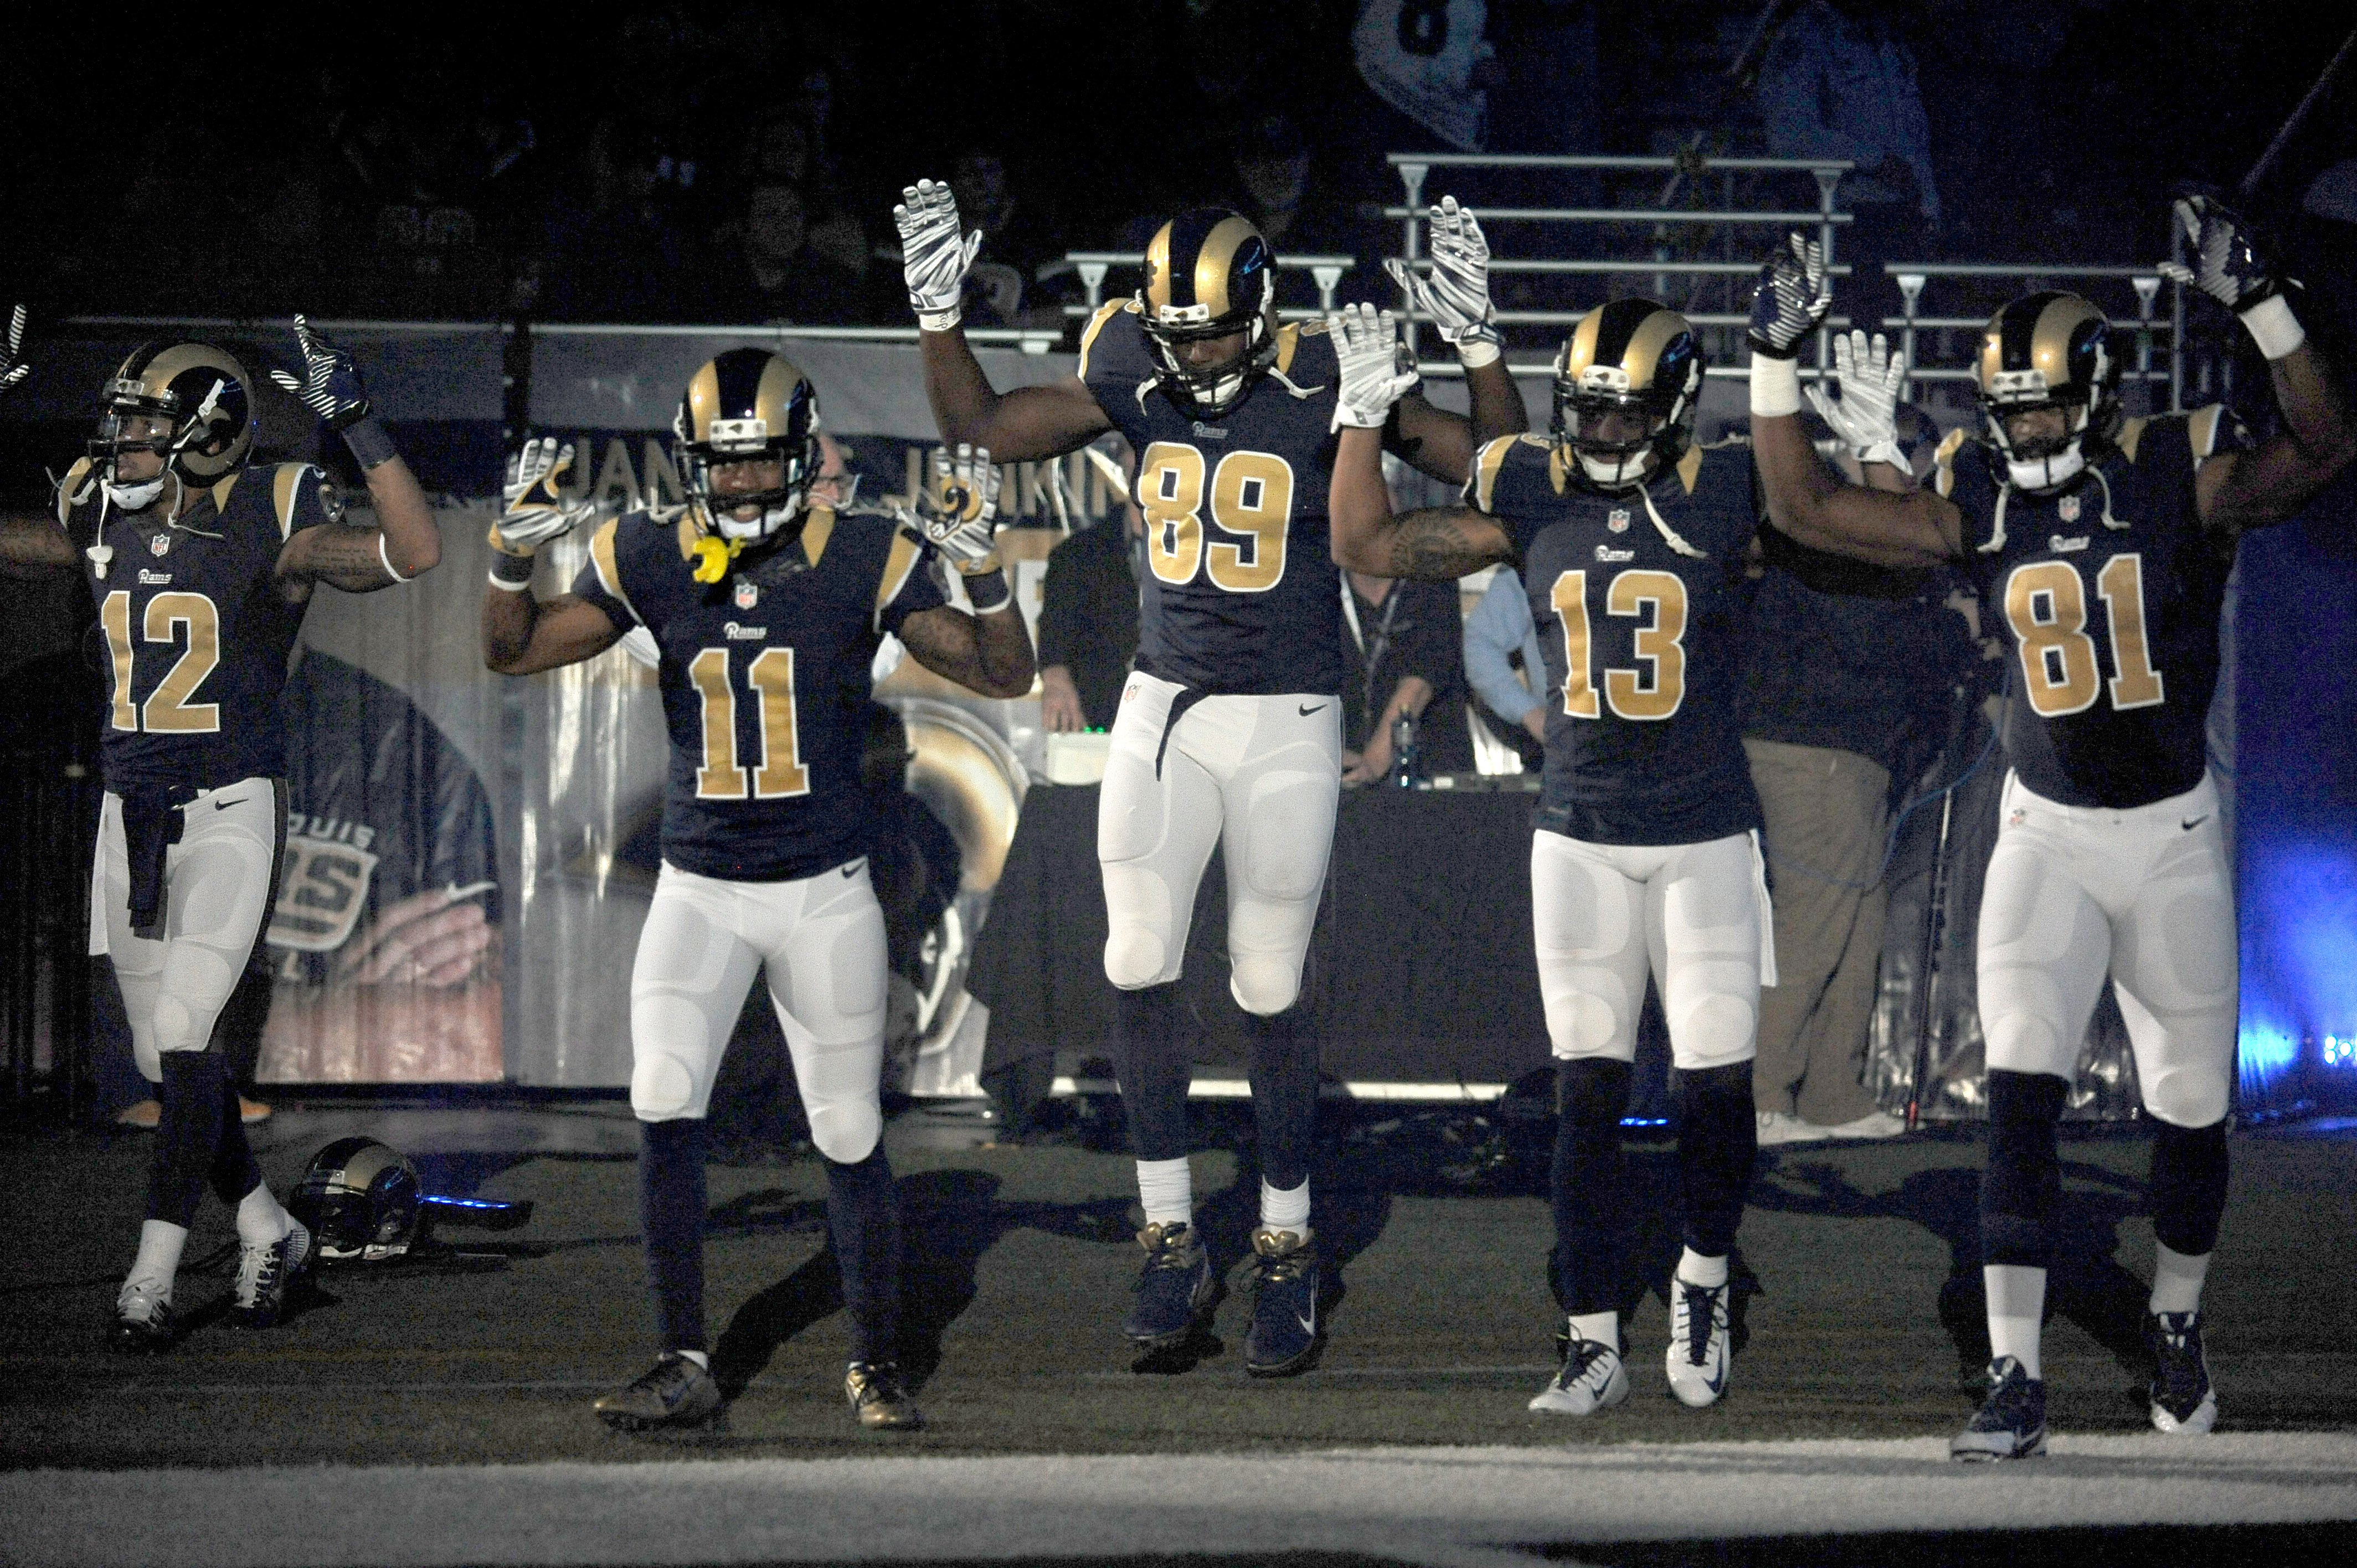 Police group wants Rams players disciplined for  Hands Up  gesture ... 7a2a93cc3f75